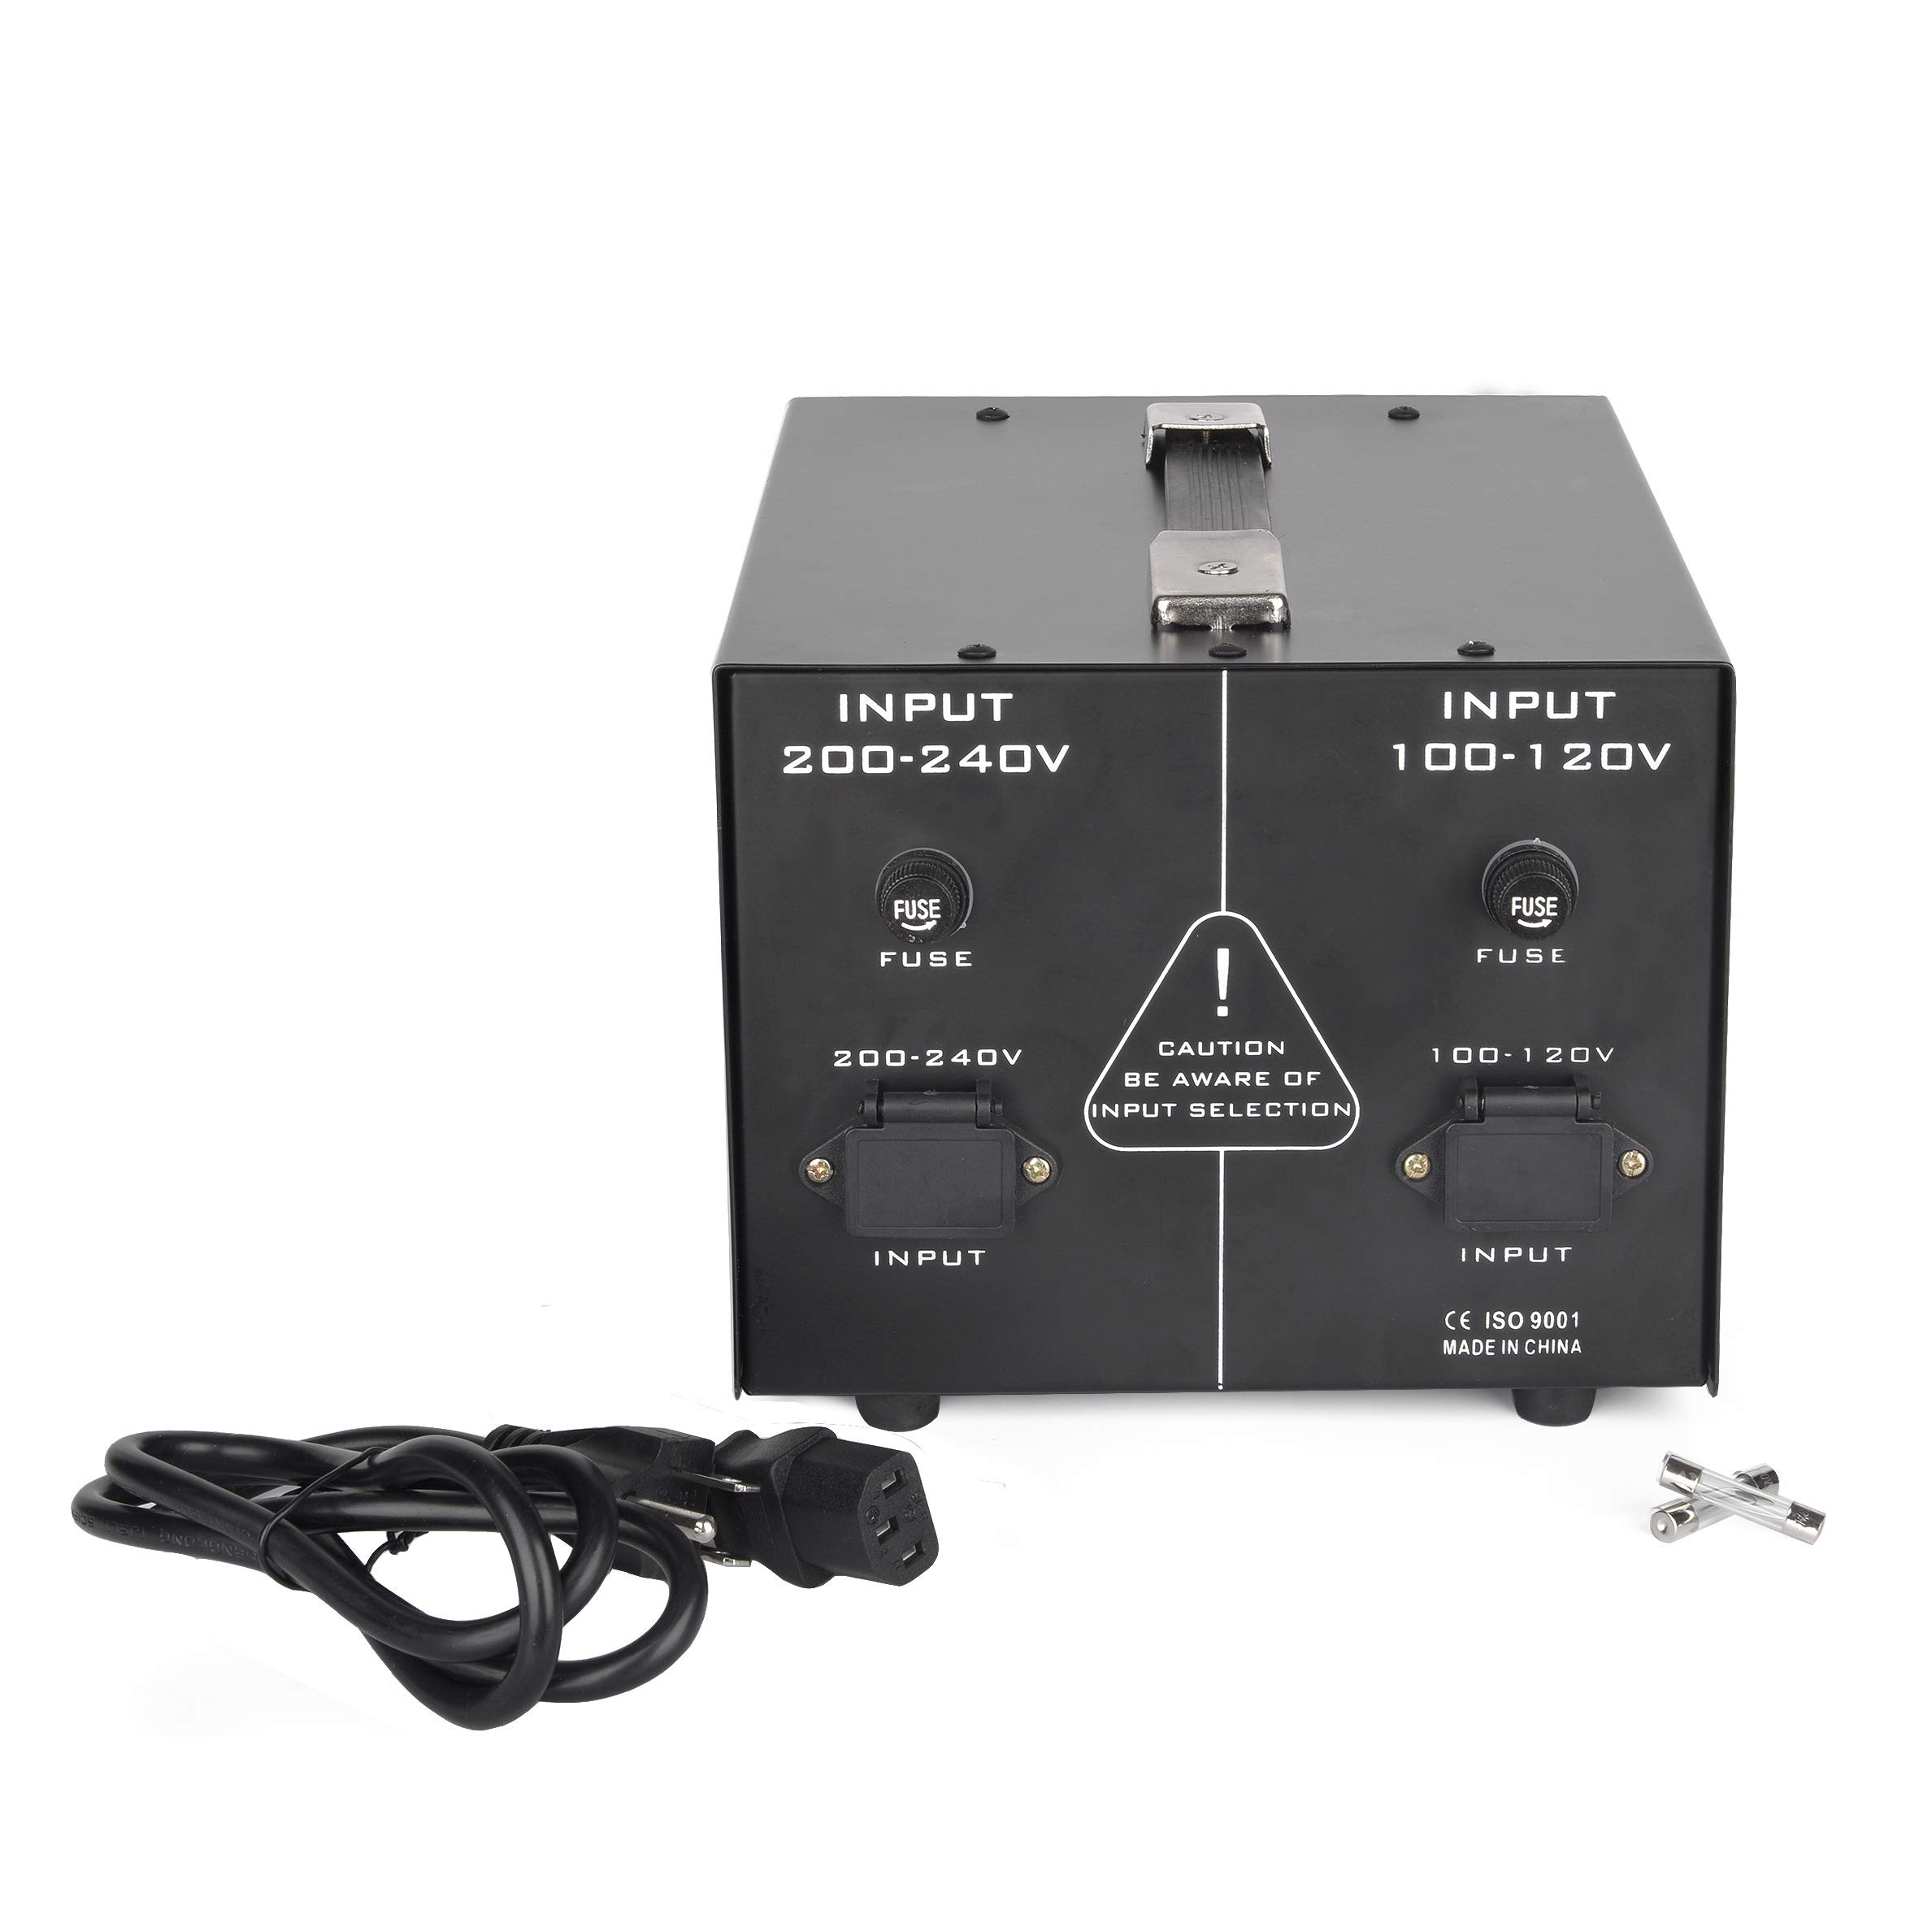 3000W Auto Step Up & Step Down Voltage Transformer Converter, ST-Pro Series Heavy-Duty AC 110/220V Converter with US Standard, Universal, Schuko AC Outlets & DC 5V USB Port by Goldsource by Goldsource (Image #6)